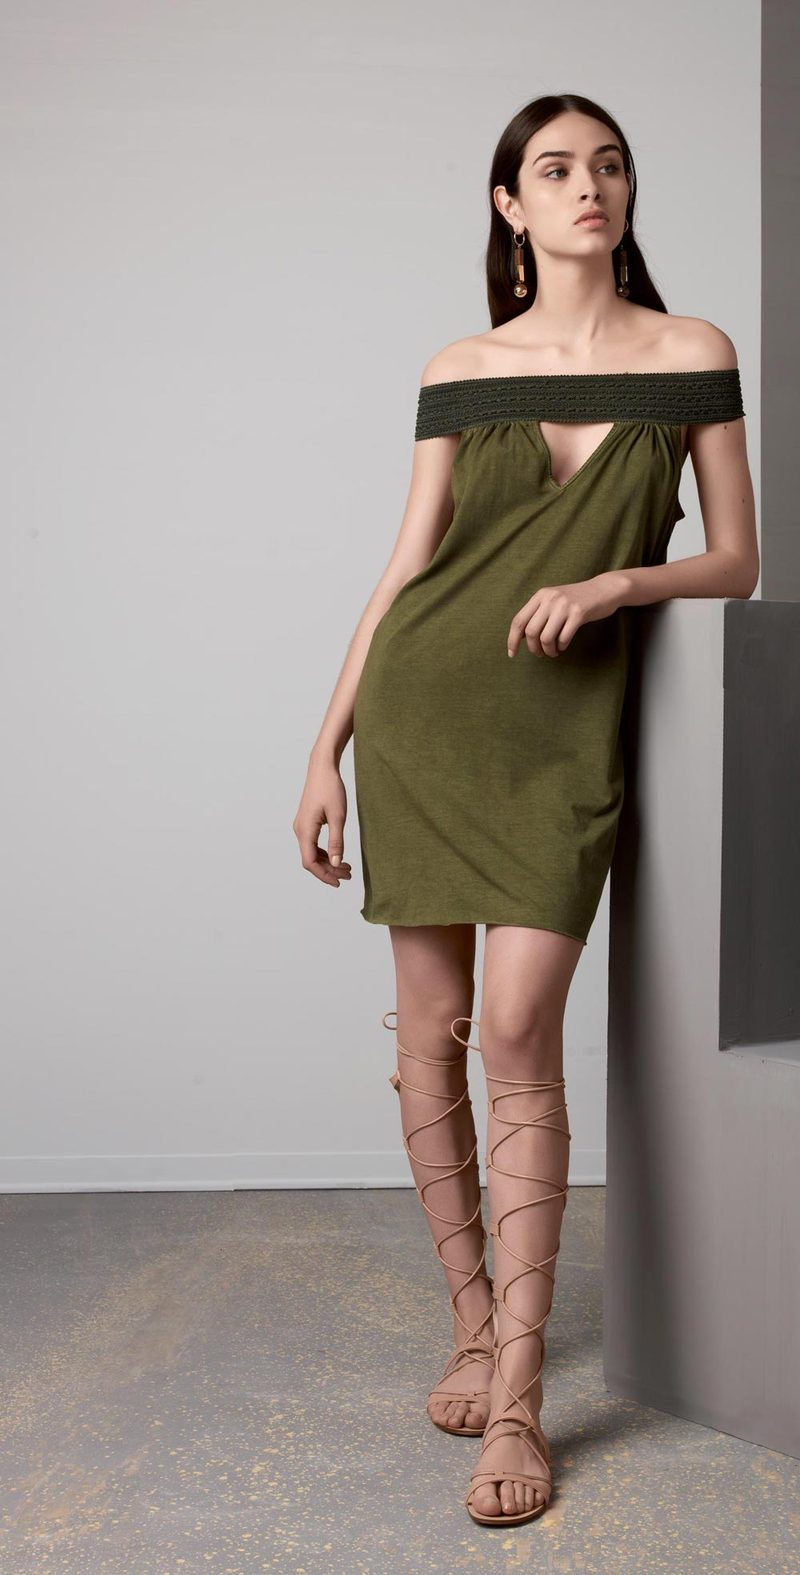 Olive humeral neckline dress